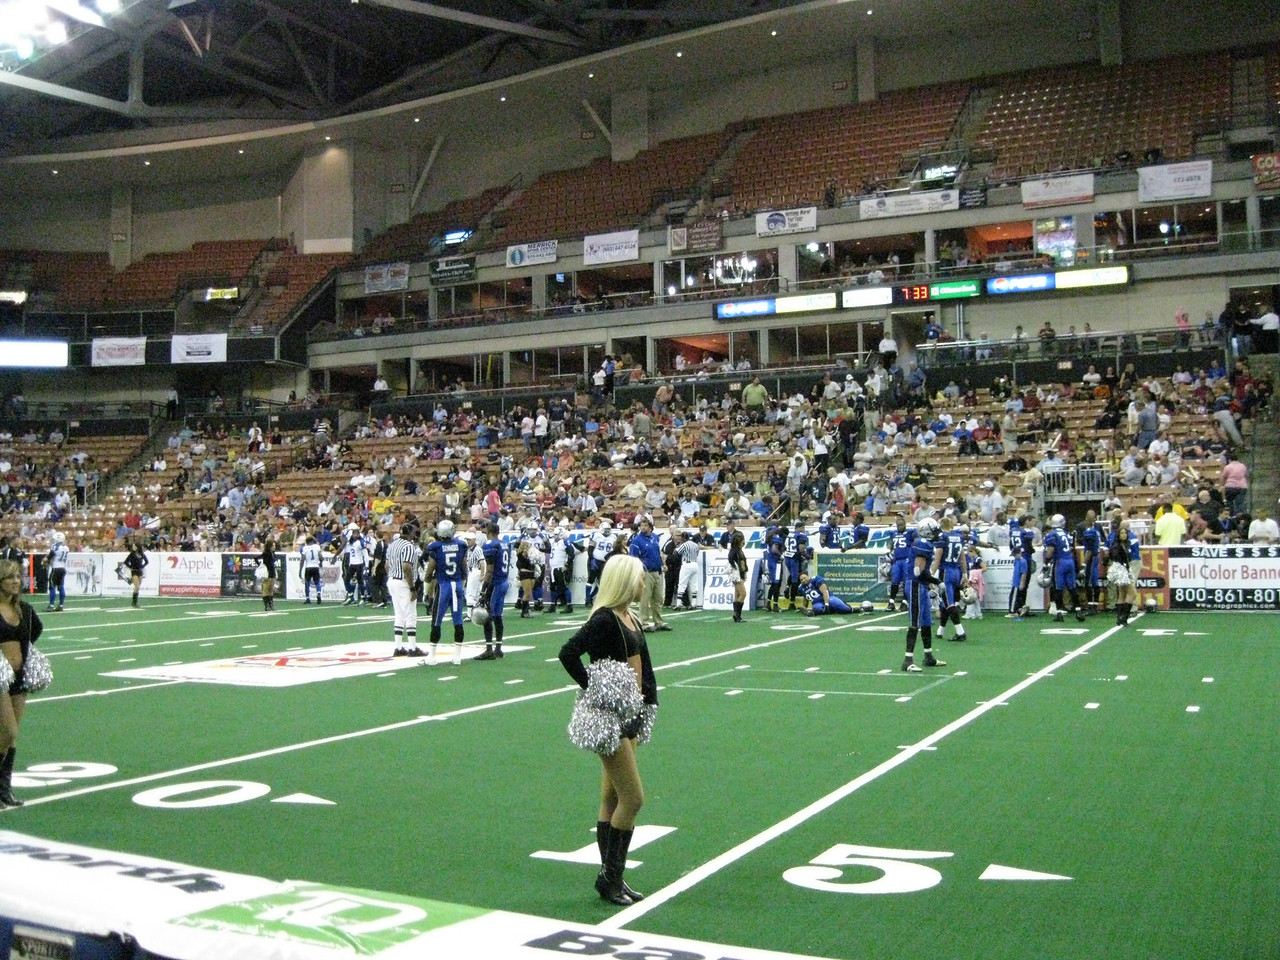 The Manchester wolves vs. Wilkes-Barre/Scranton Pioneers, Friday, July 24, 2009.